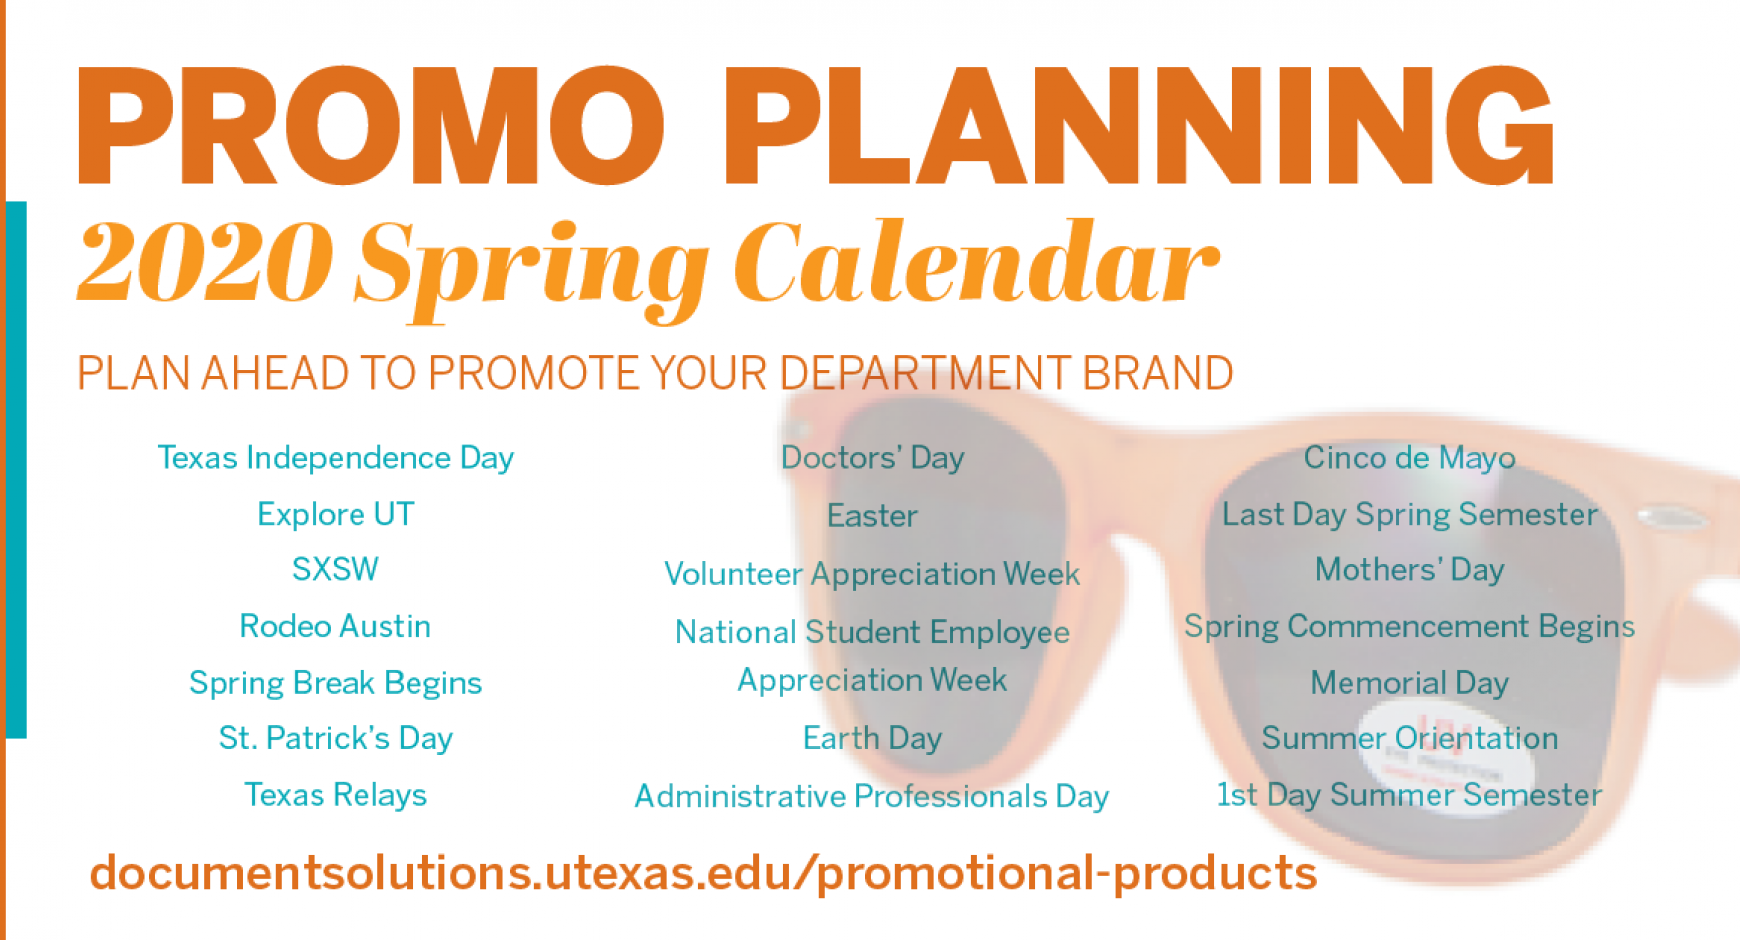 2020 Spring Calendar for Promotional Product Planning | Document